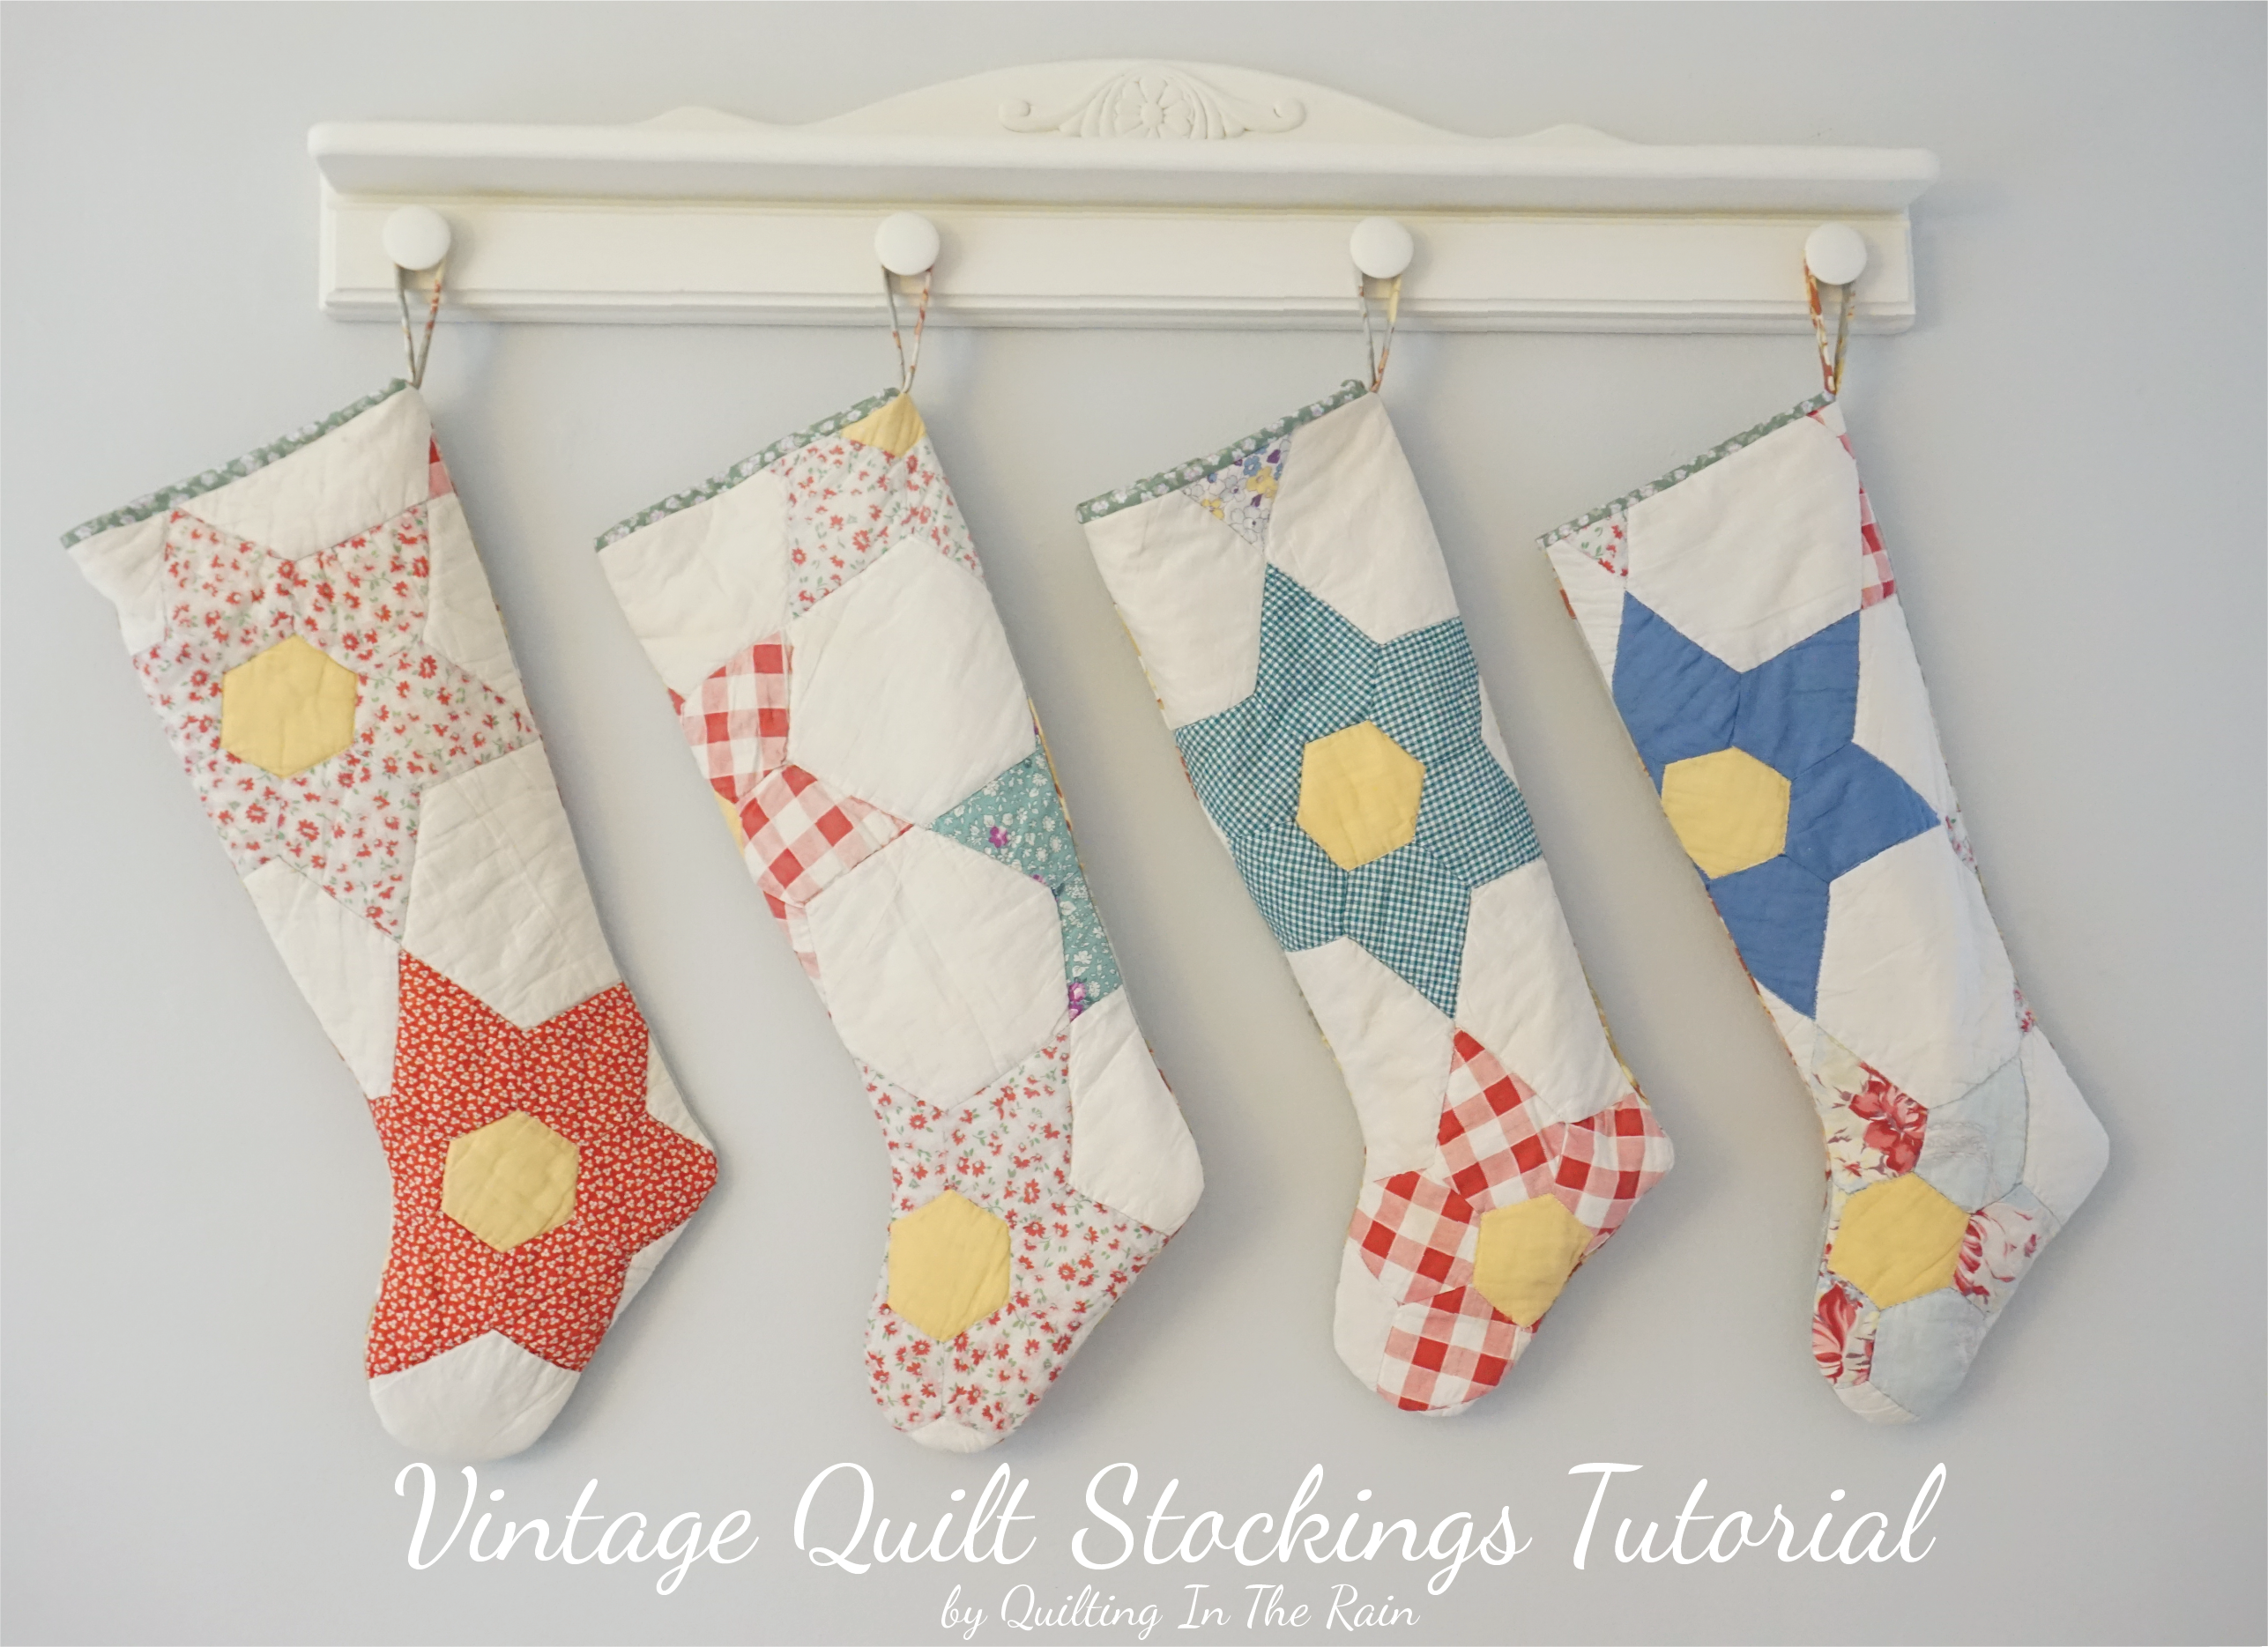 Vintage Quilt Stockings Tutorial